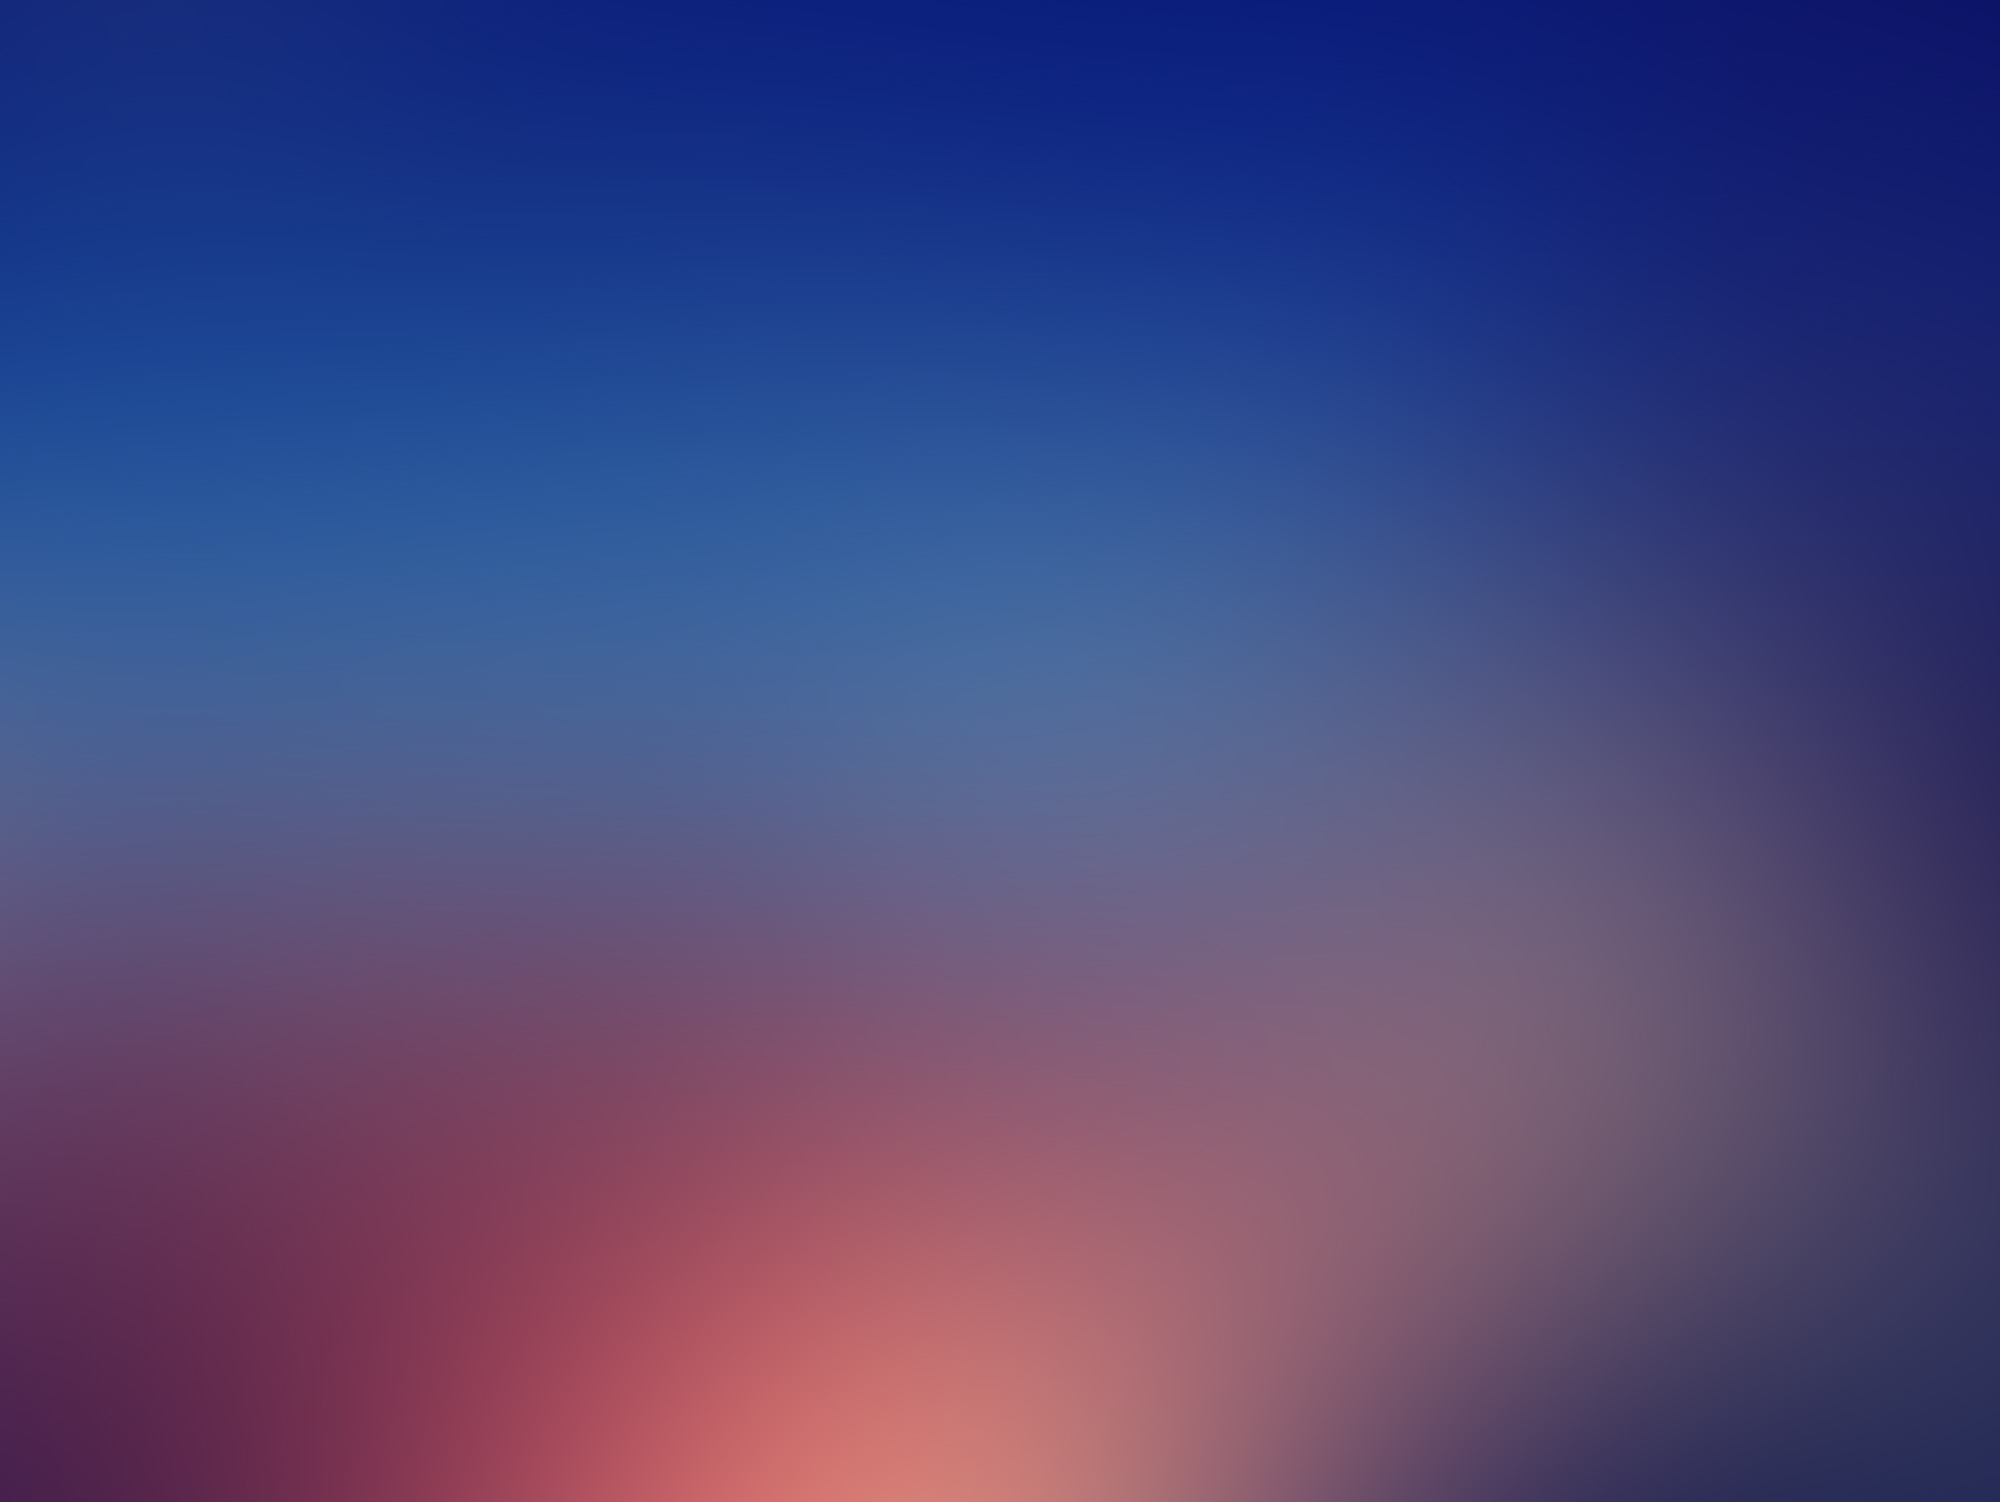 Free HD Solid Color Wallpaper Download